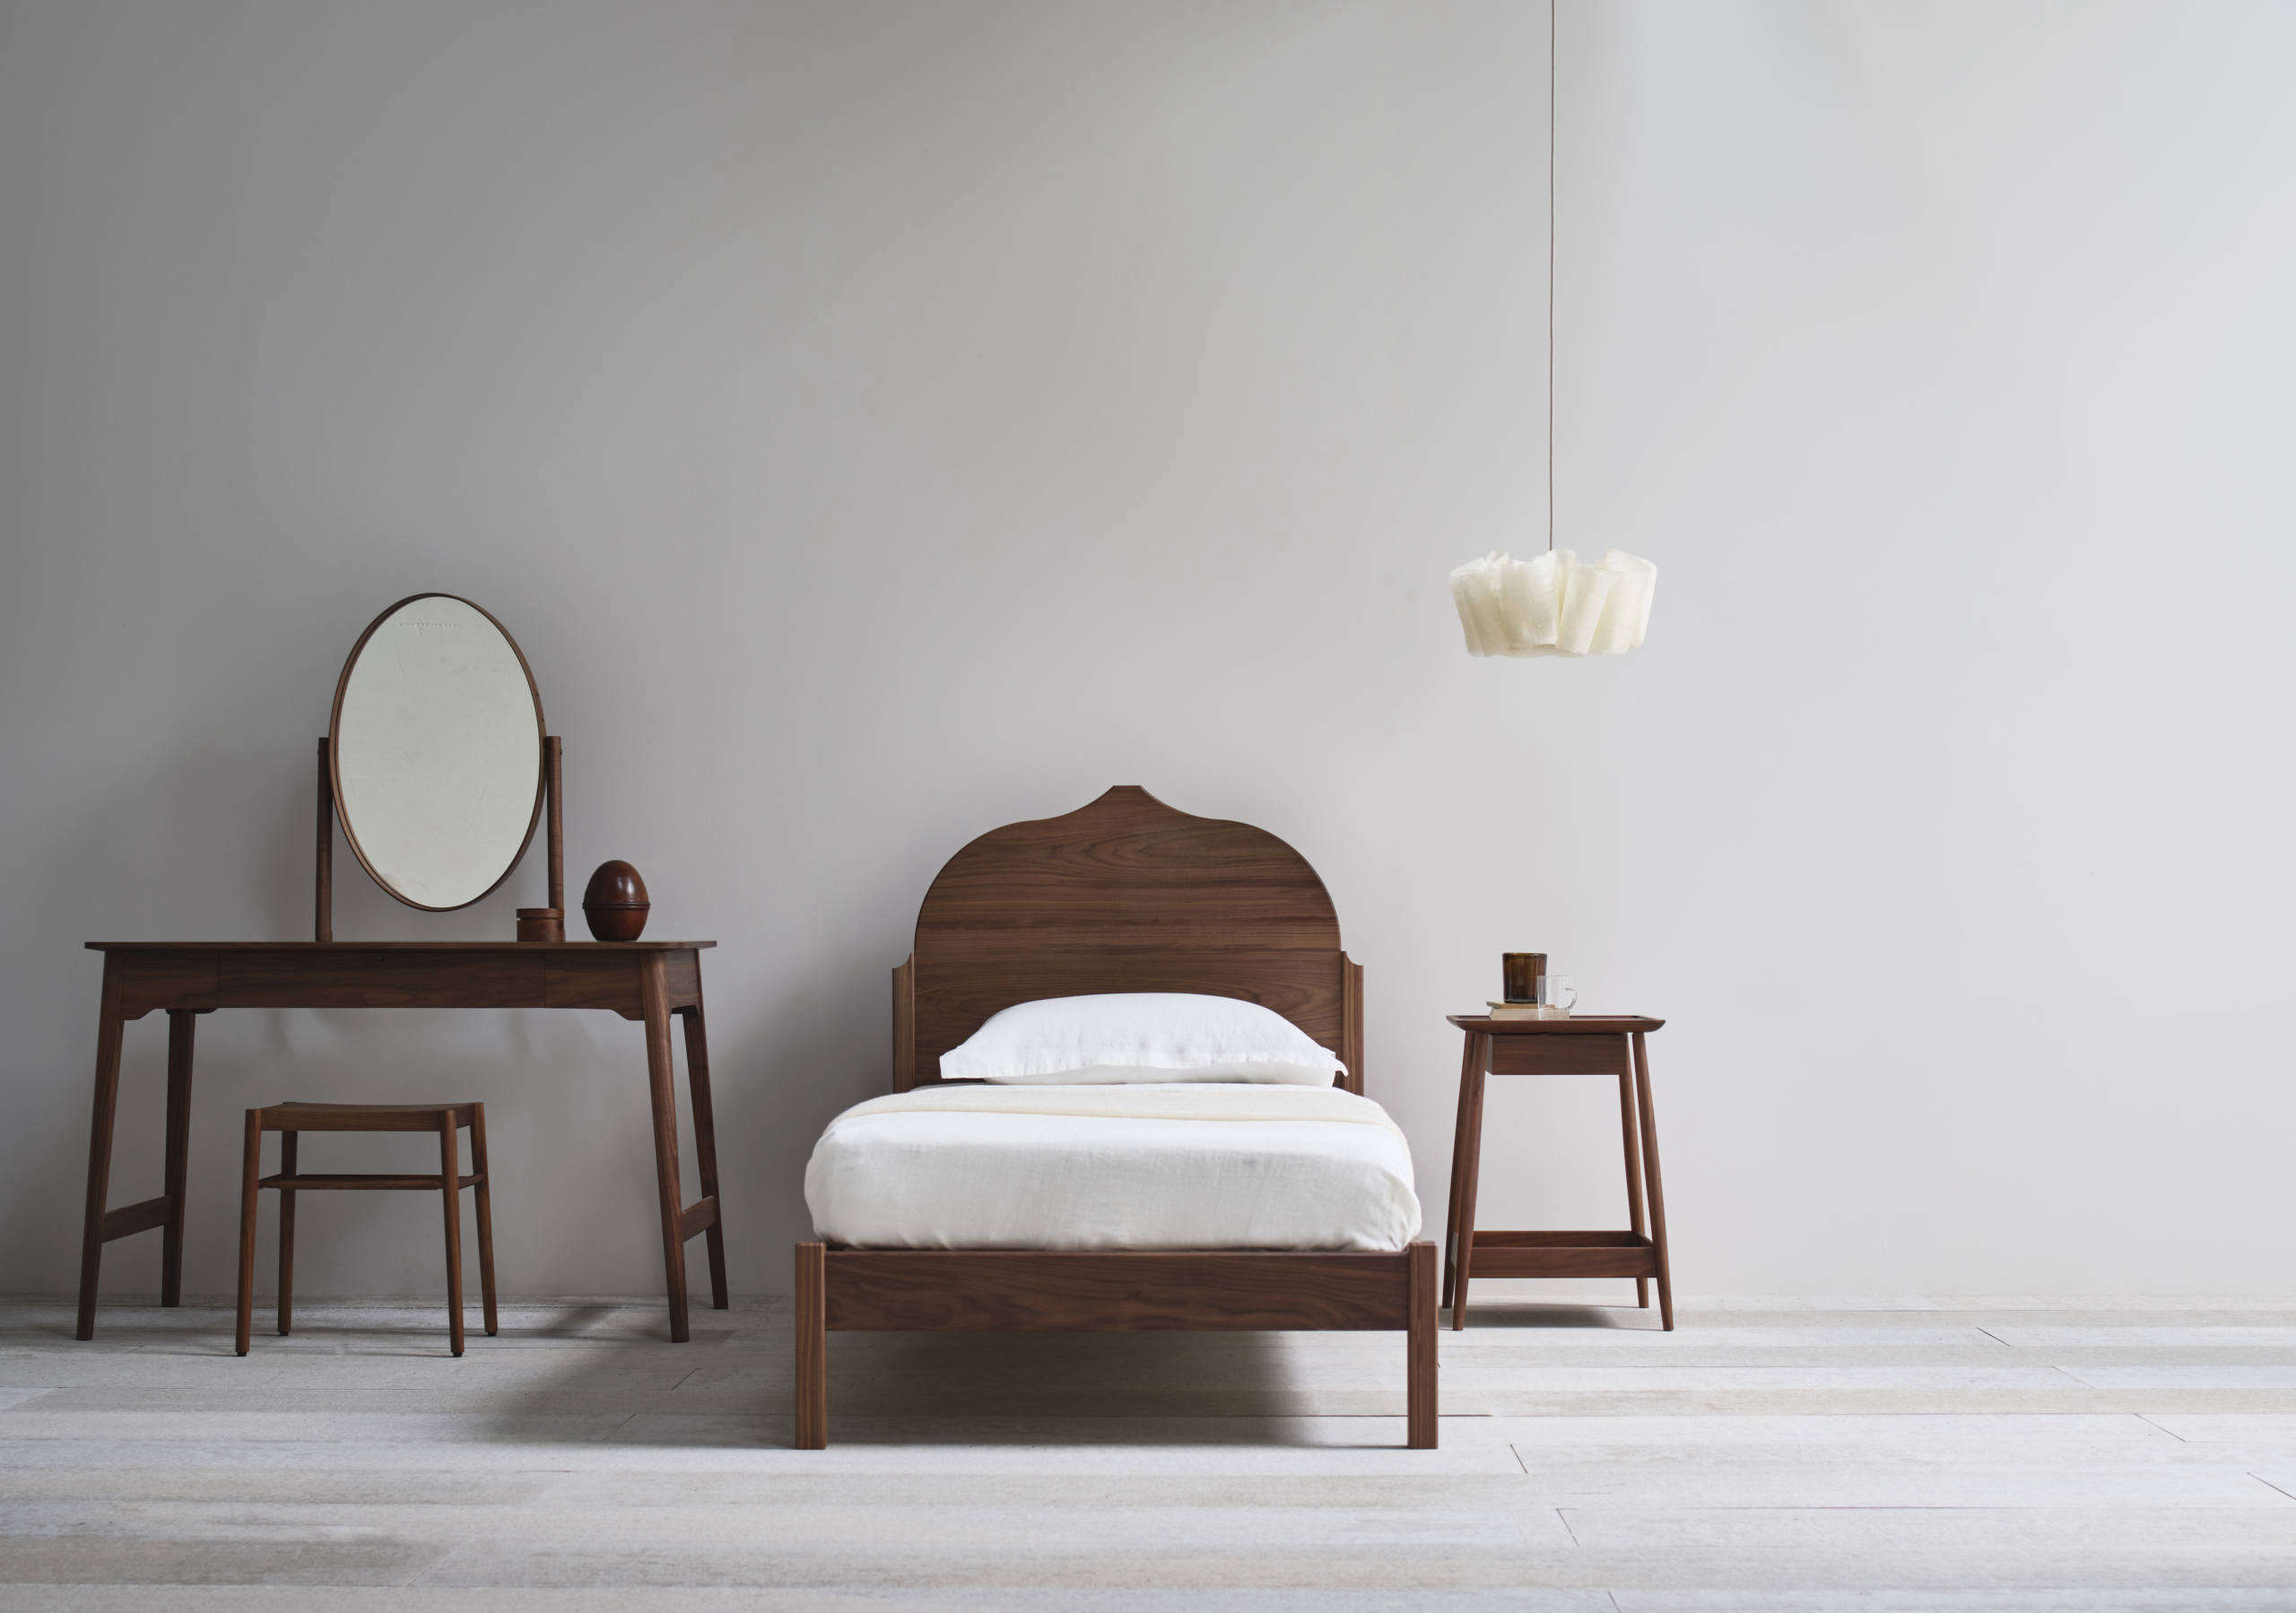 Restful Beds: The Ultimate Wooden Beds by Pinch of London